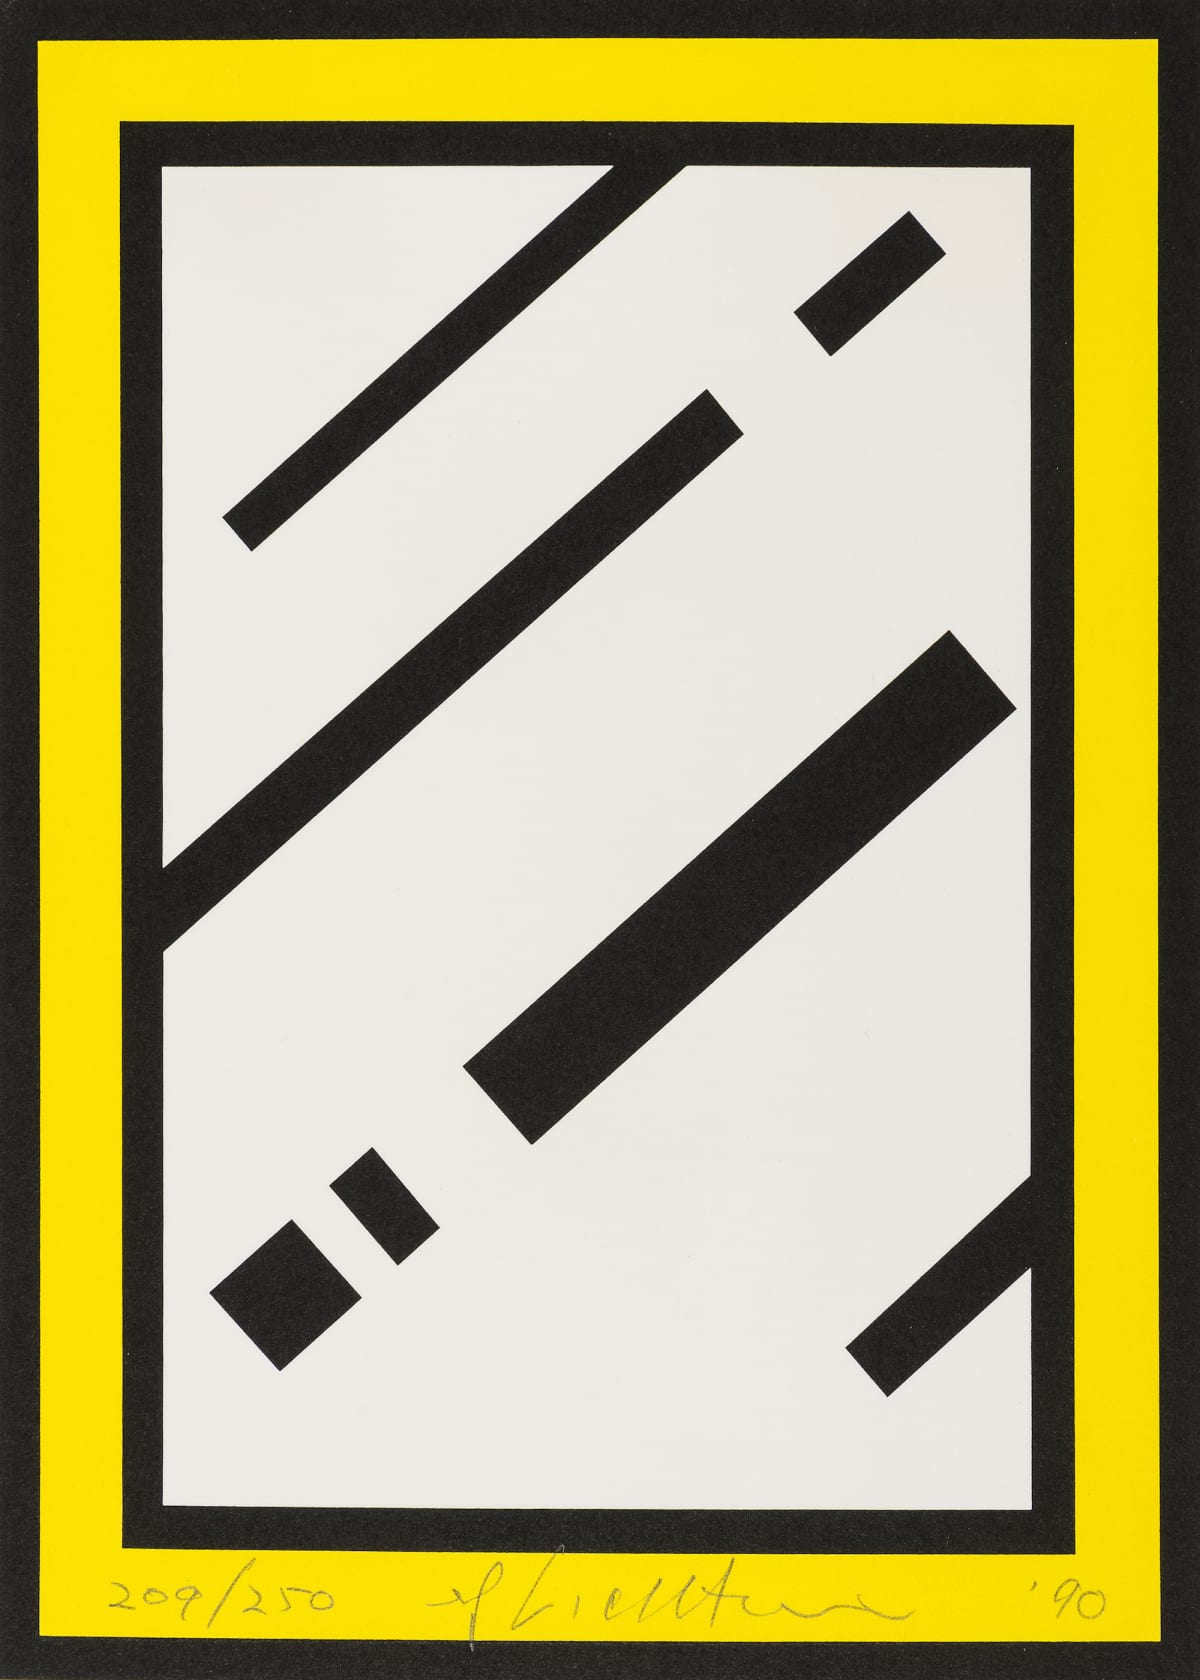 Roy Lichtenstein Mirror, 1990 Screenprint in colours, on white 4-ply museum board 25.4 x 18.5 cm Edition of 250